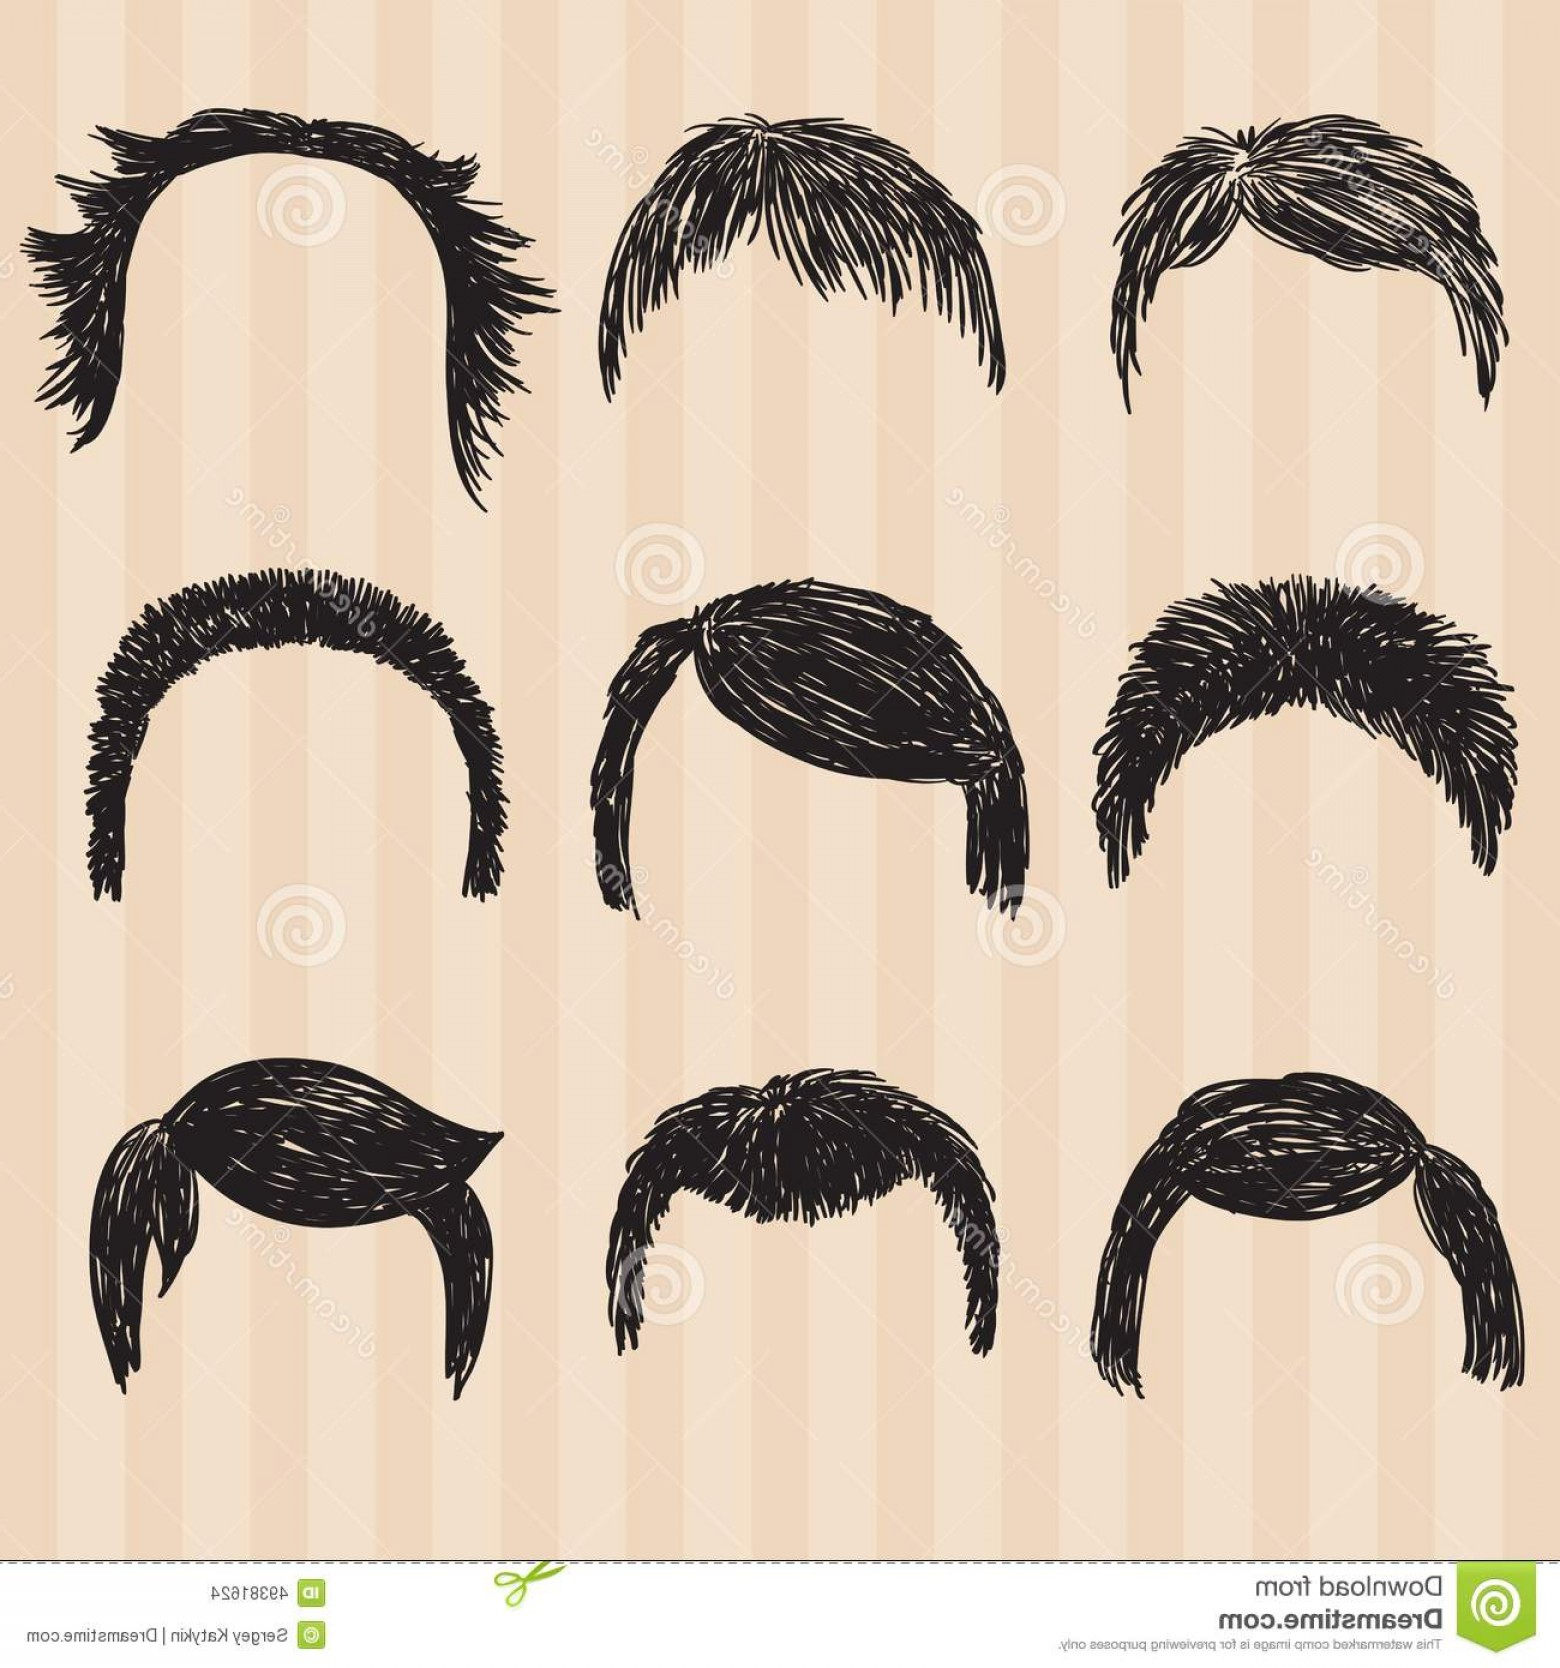 Short Men's Hair Vector: Stock Illustration Mens Collection Hair Styling Retro Vector Illustration Image